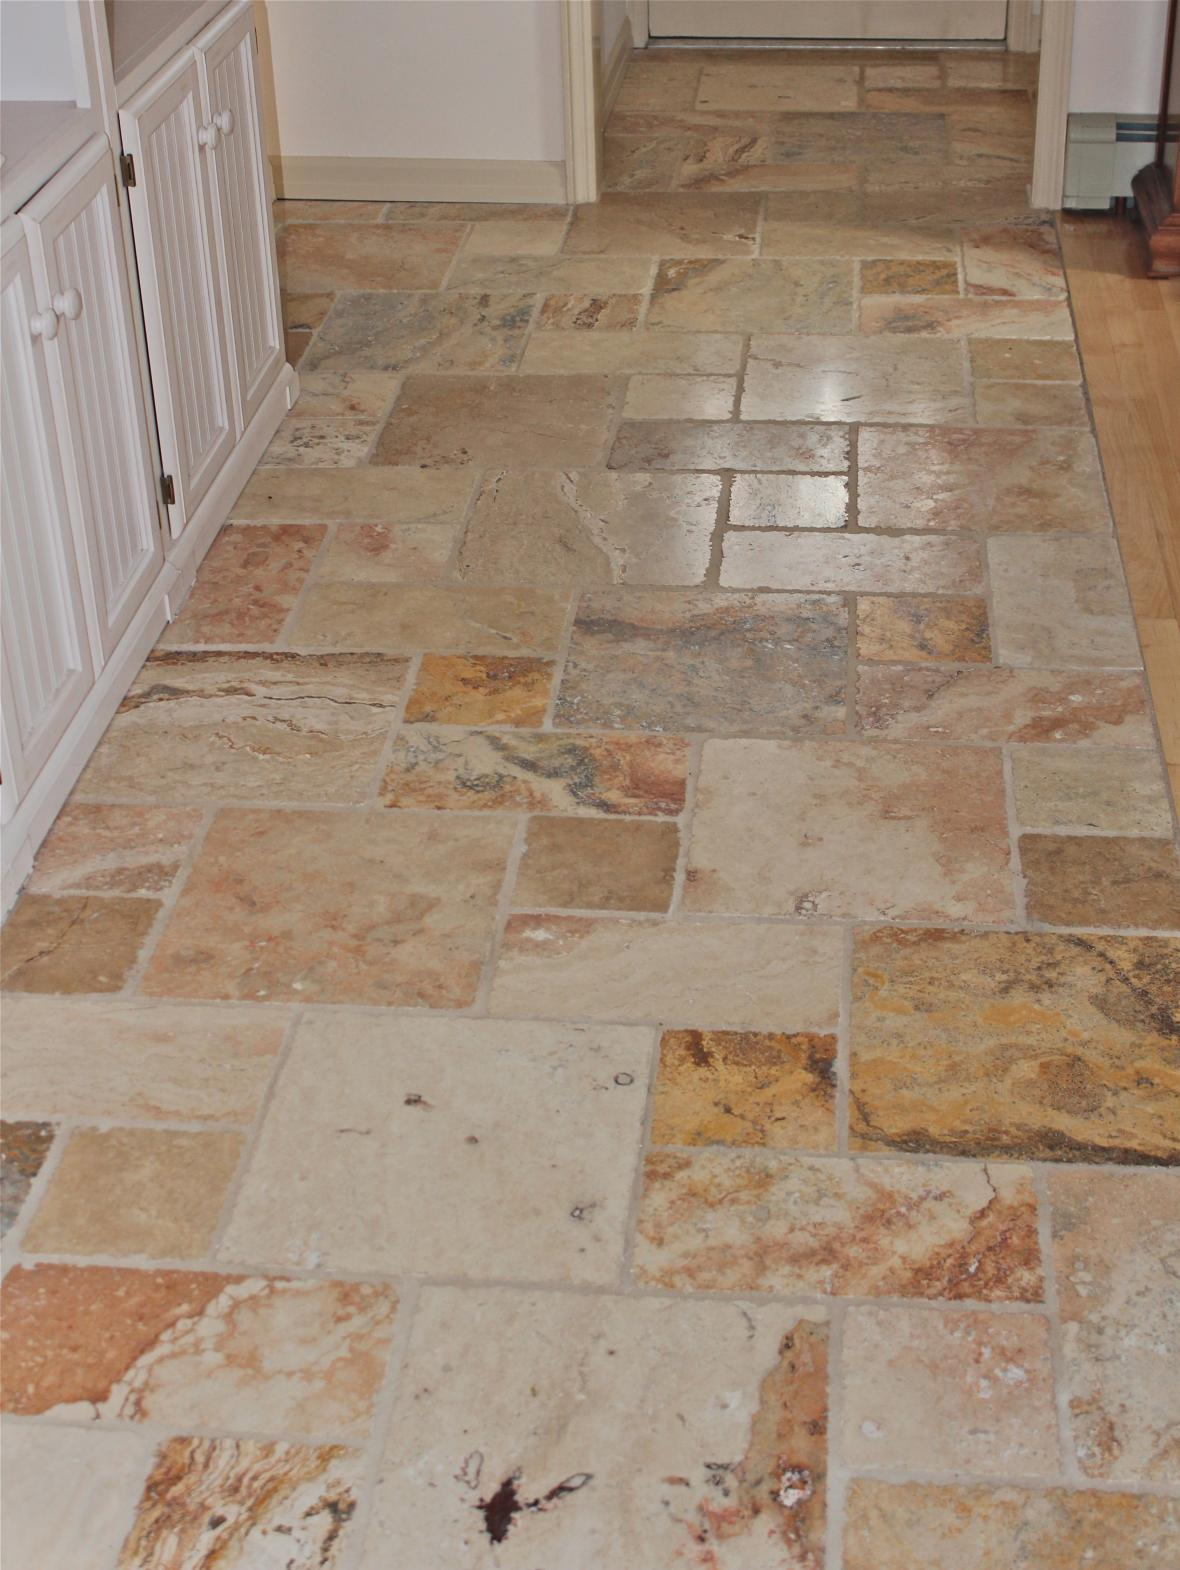 lot of combination of size and texture is available which can fit kitchen tile floor ideas Wood Effect Tile Floor